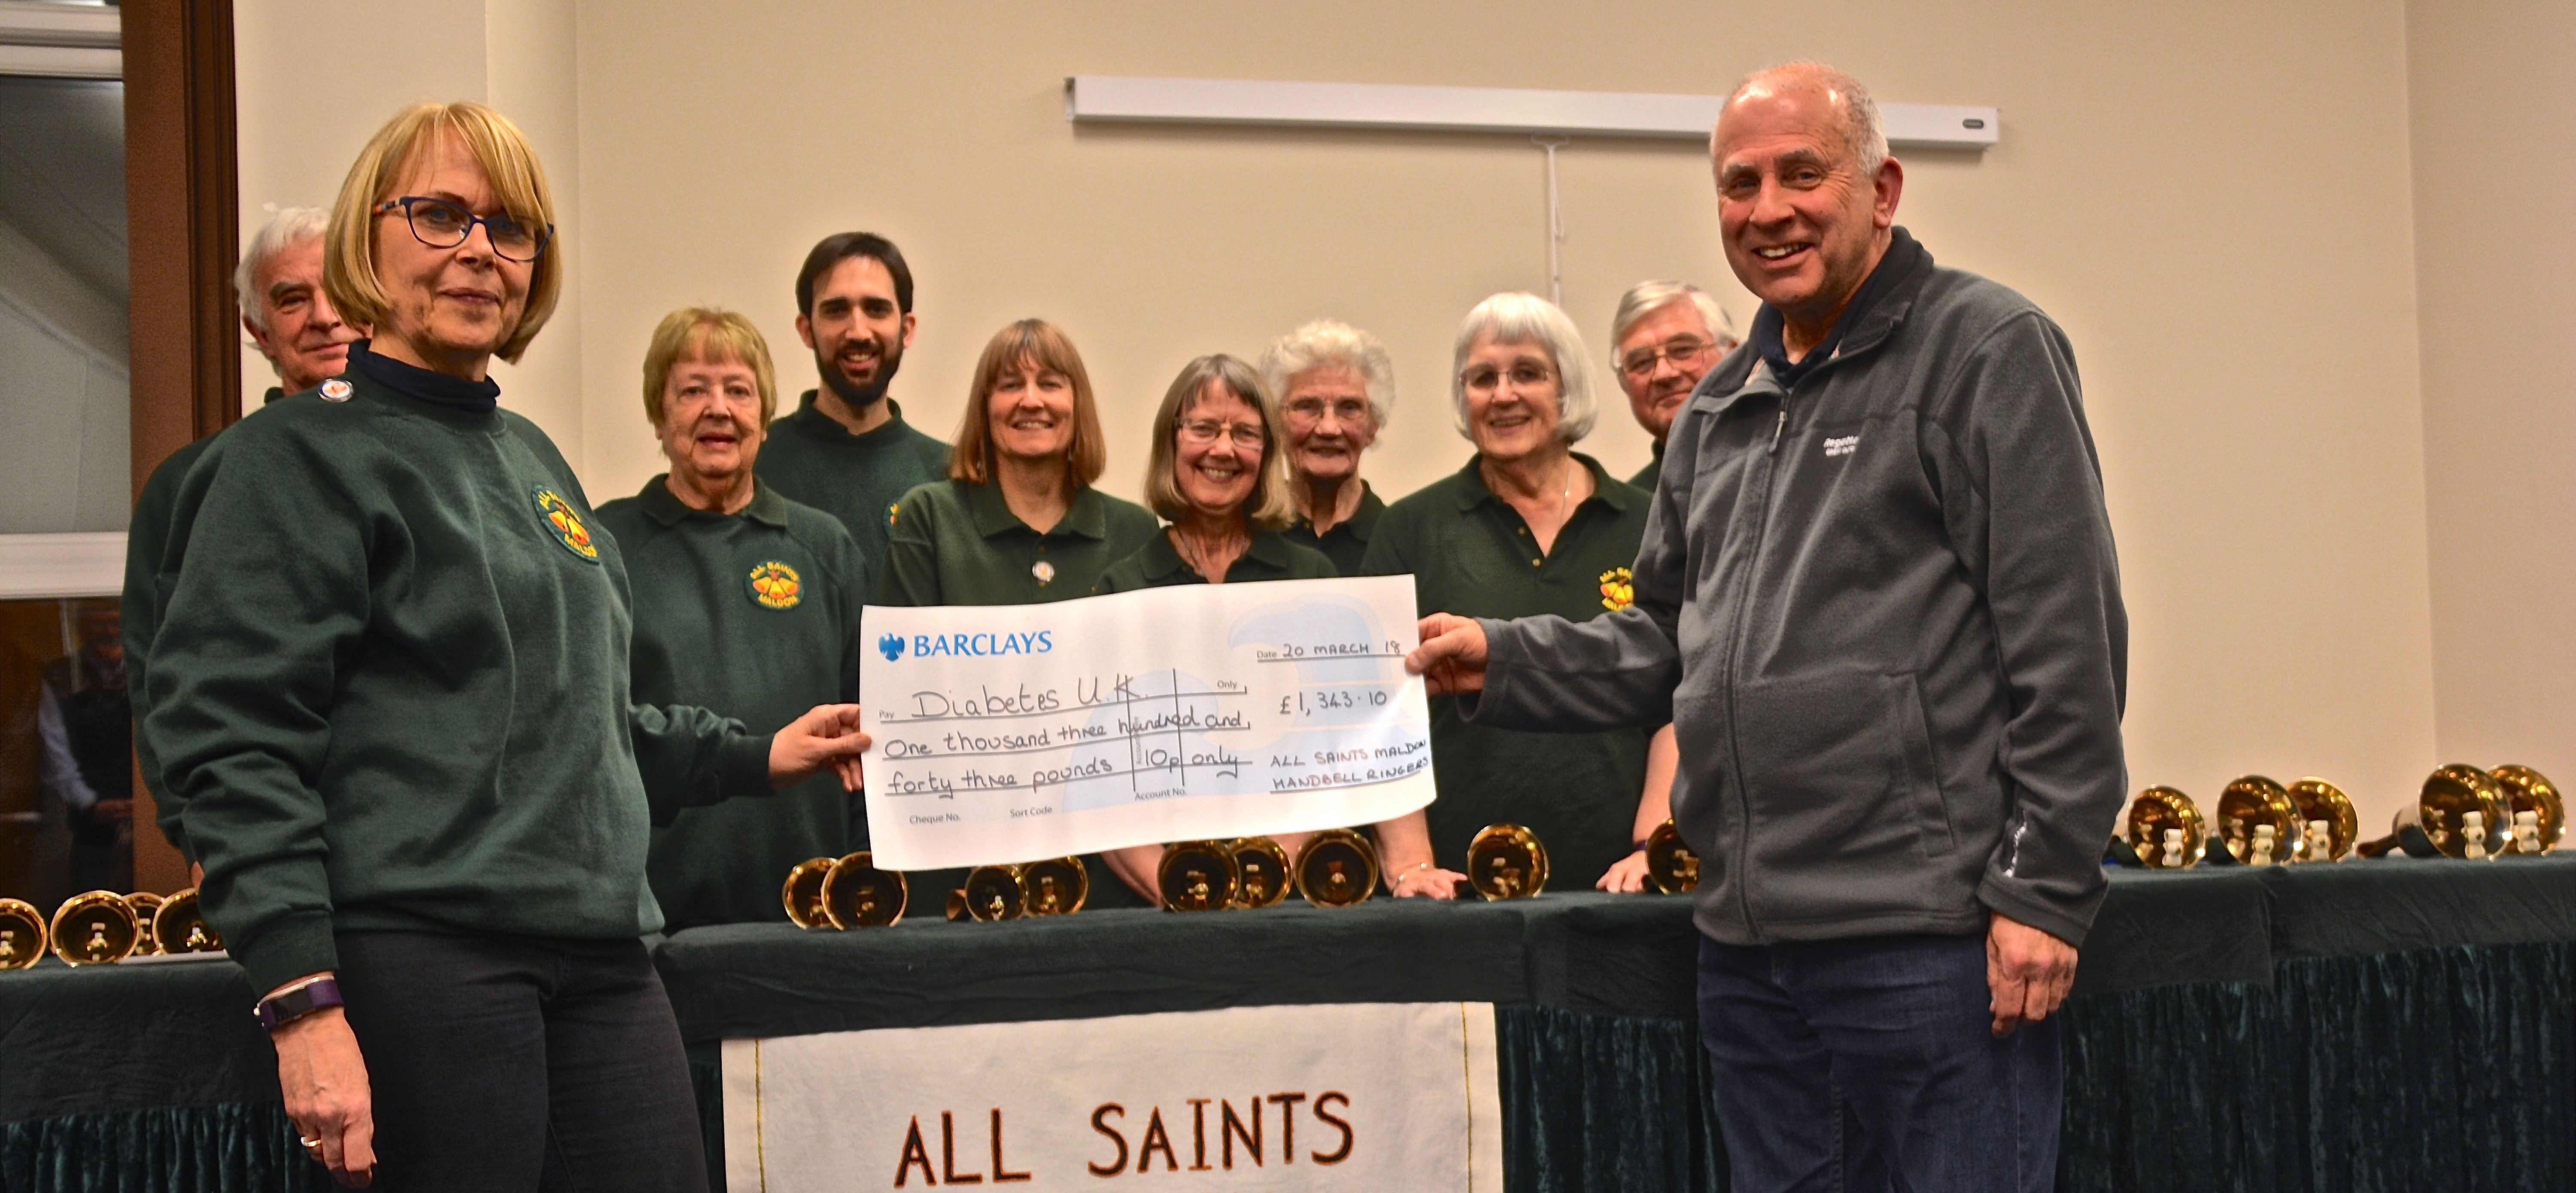 Maldon All Saints Bellringers donate £1,343.10 to our group